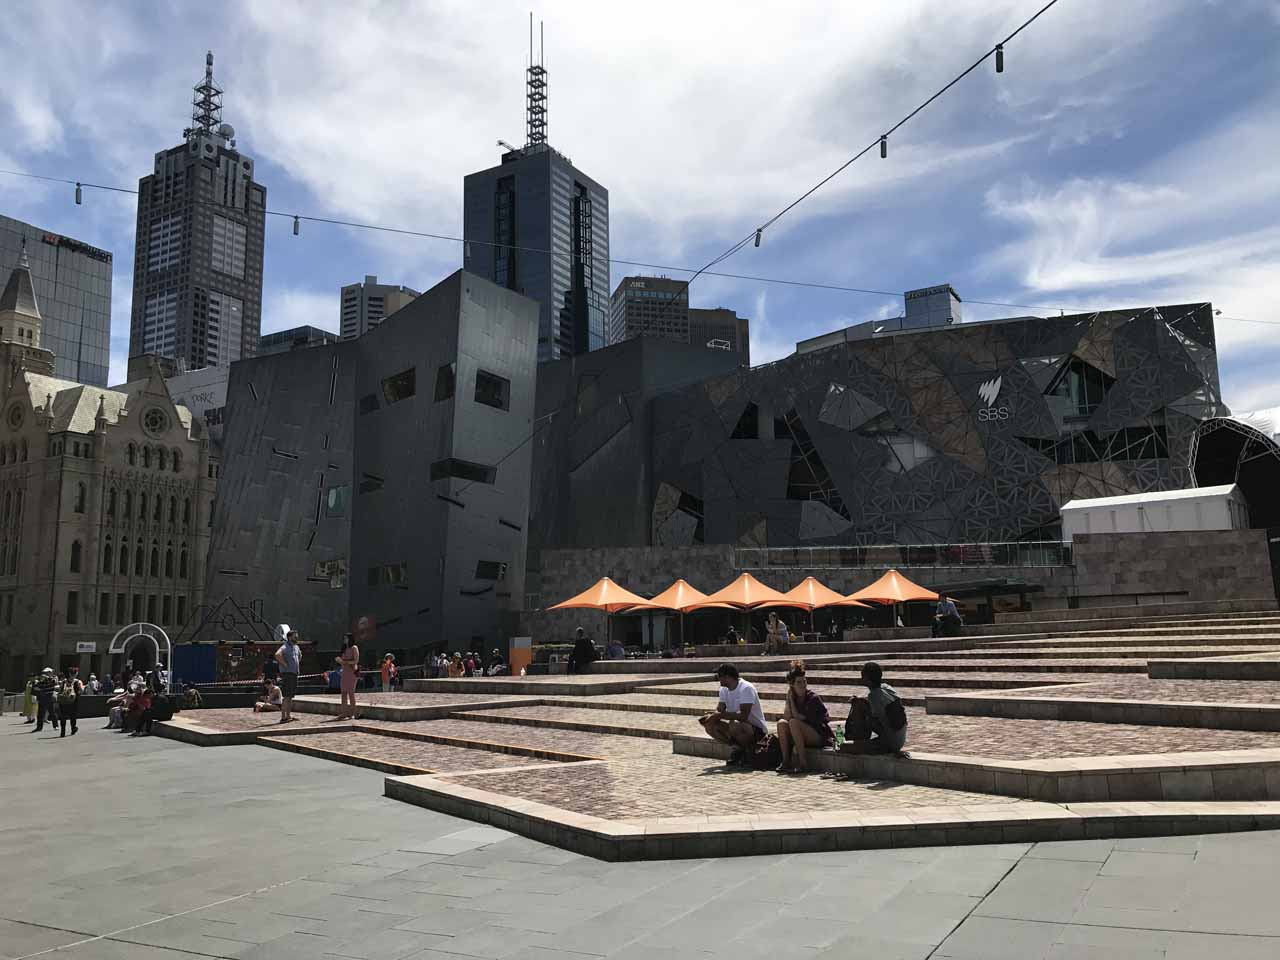 One of the popular hangout spots in the Melbourne CBD was Federation Square which was surrounded by the St Paul Cathedral to the north, Flinders Station to the west, and the Yarra River to the south